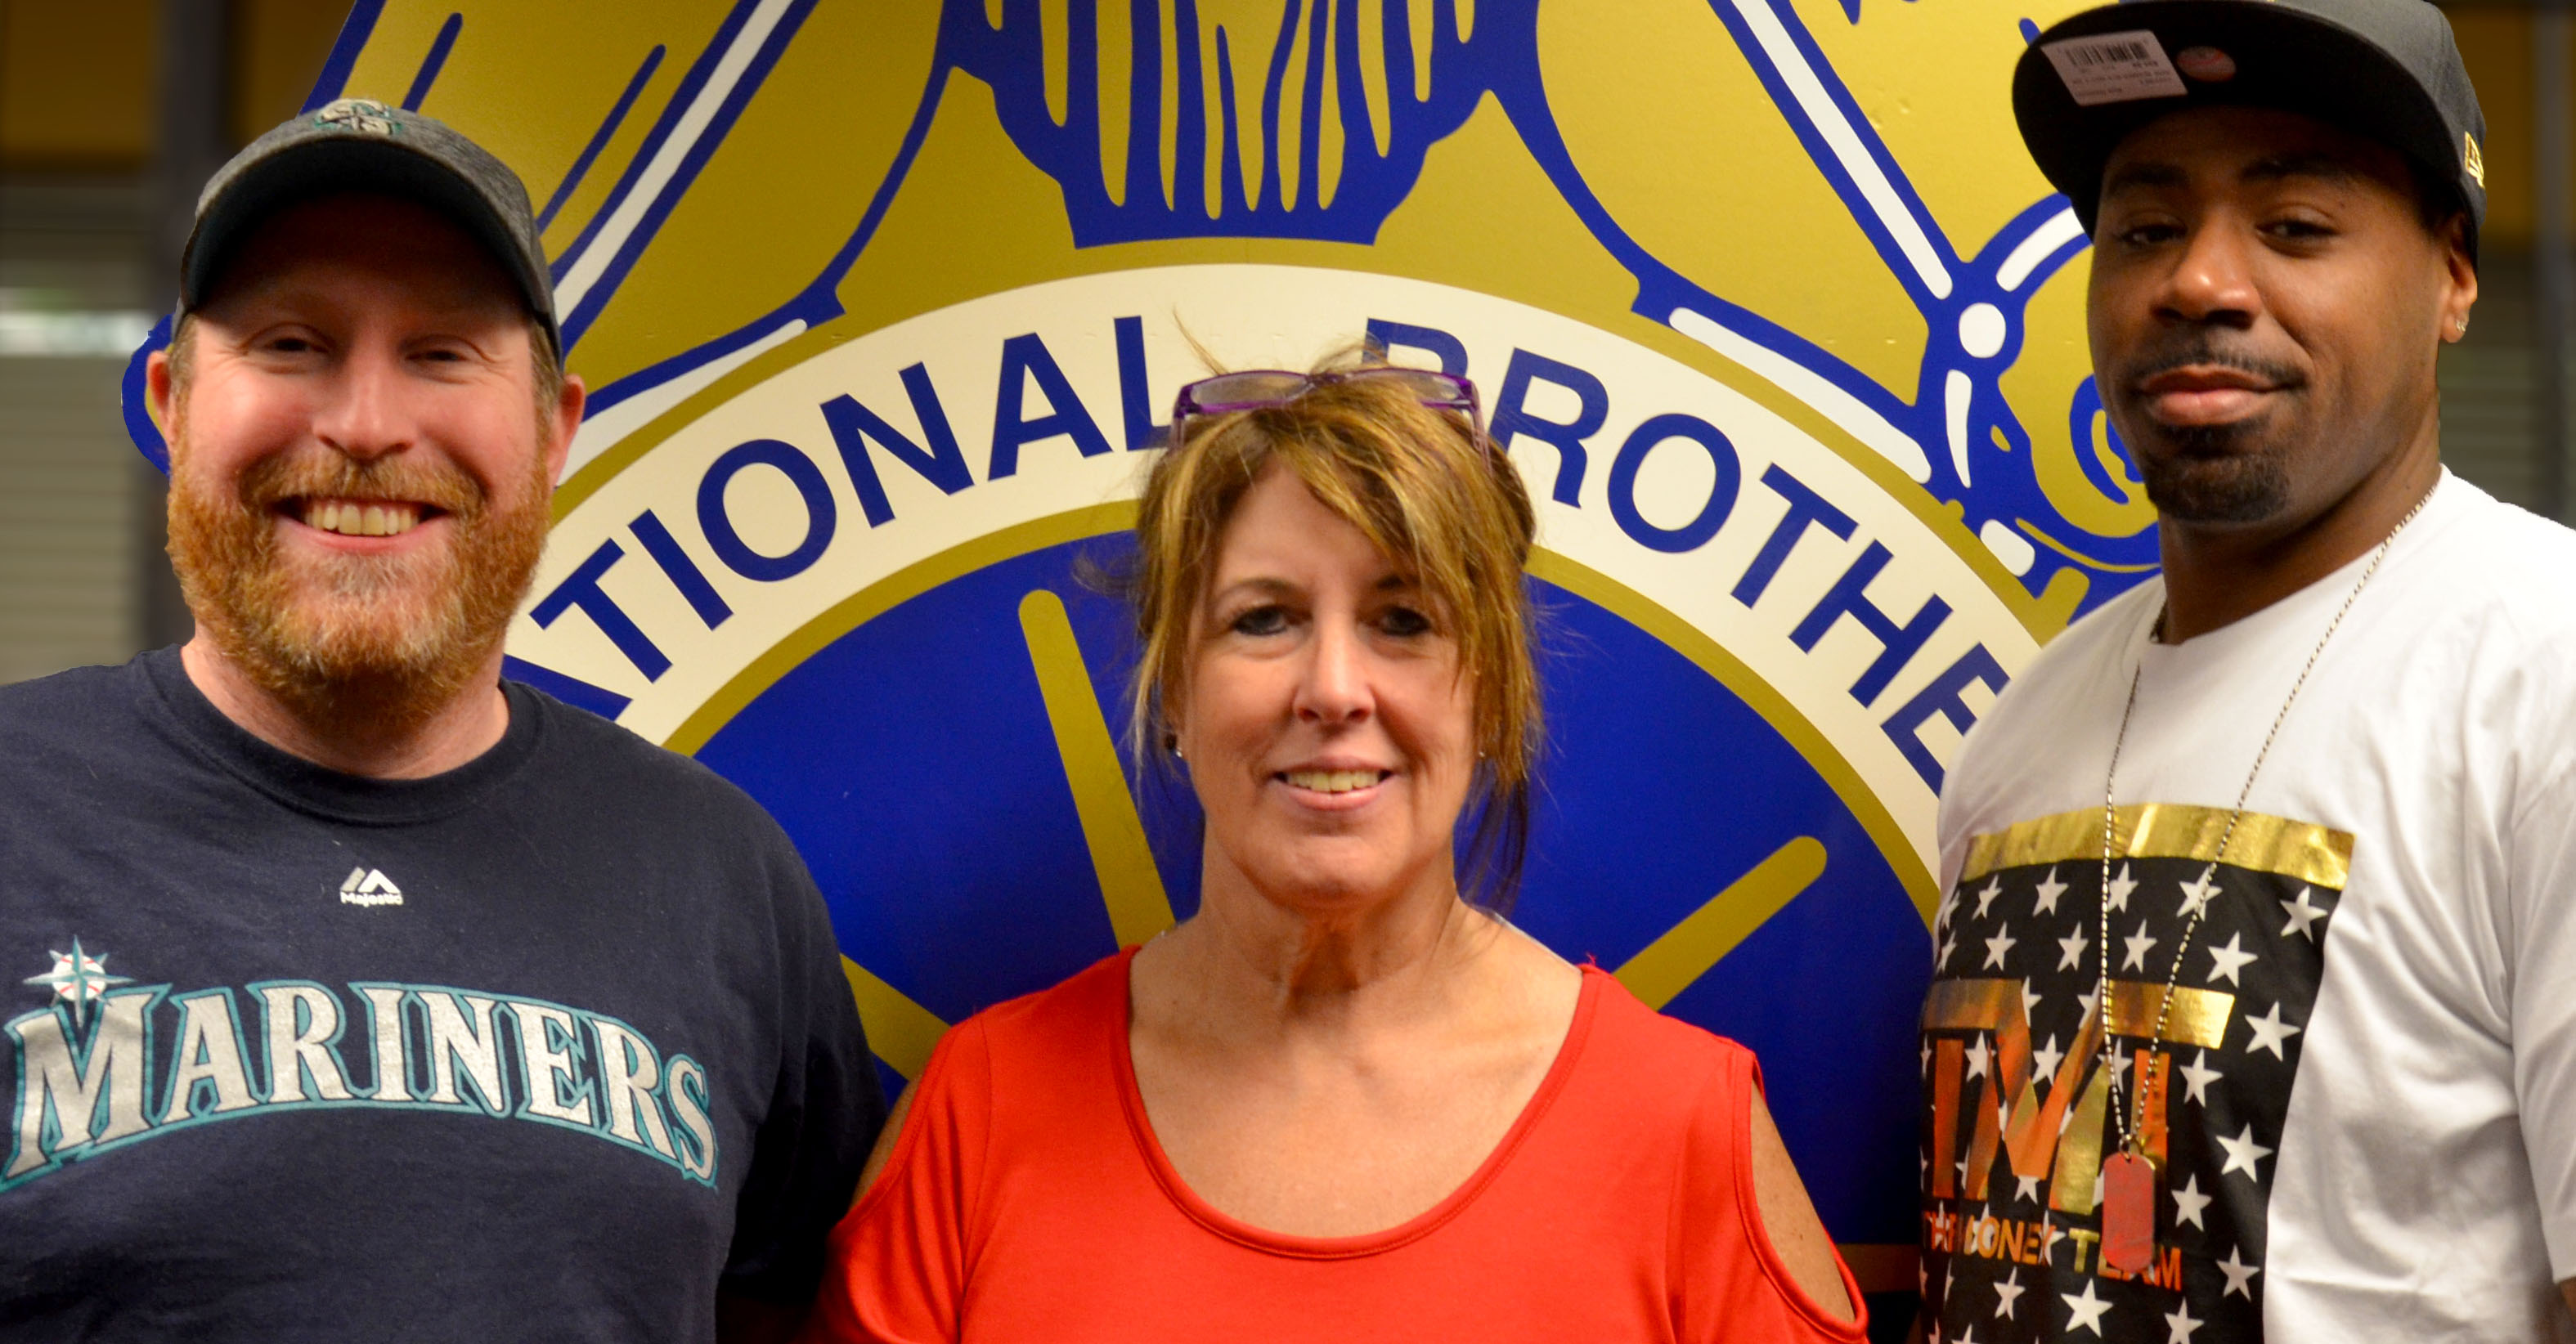 UNFI Teamsters win pension protection with new contract Image